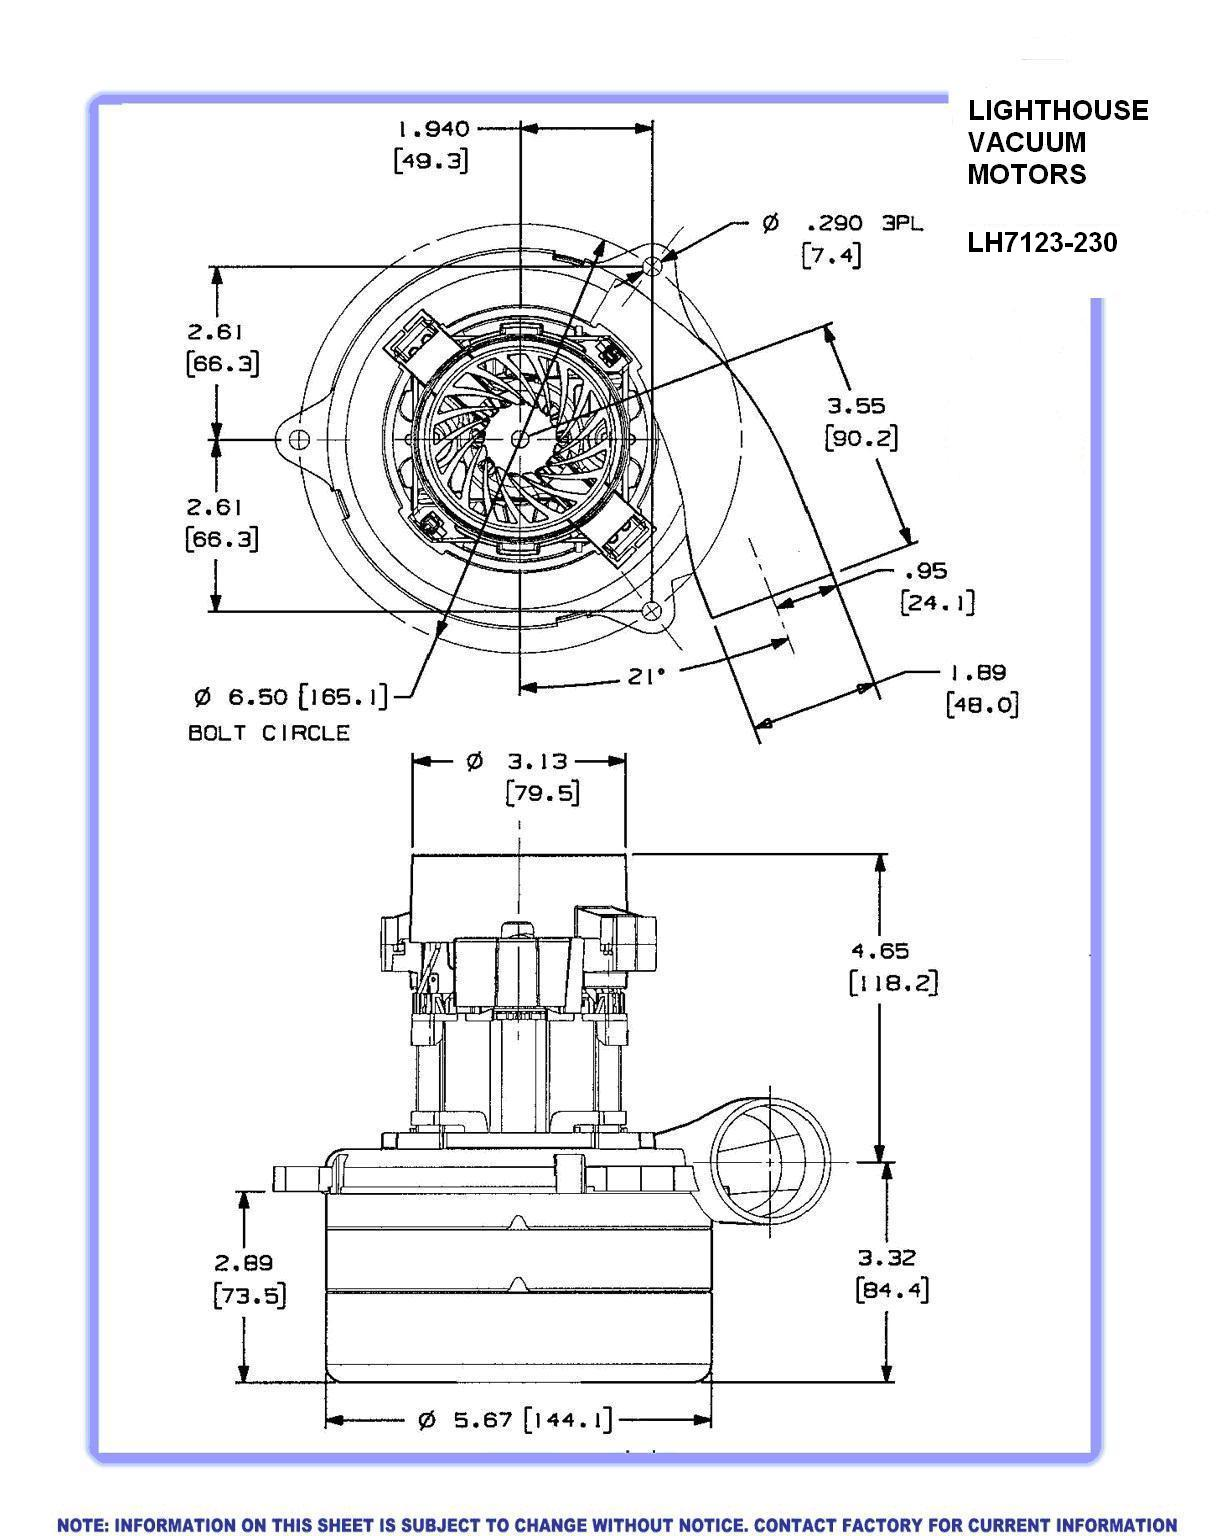 hight resolution of shopbot vacuum motors rh centralvacuummotor com vacuum cleaner motor wiring diagram rainbow vacuum motor diagram